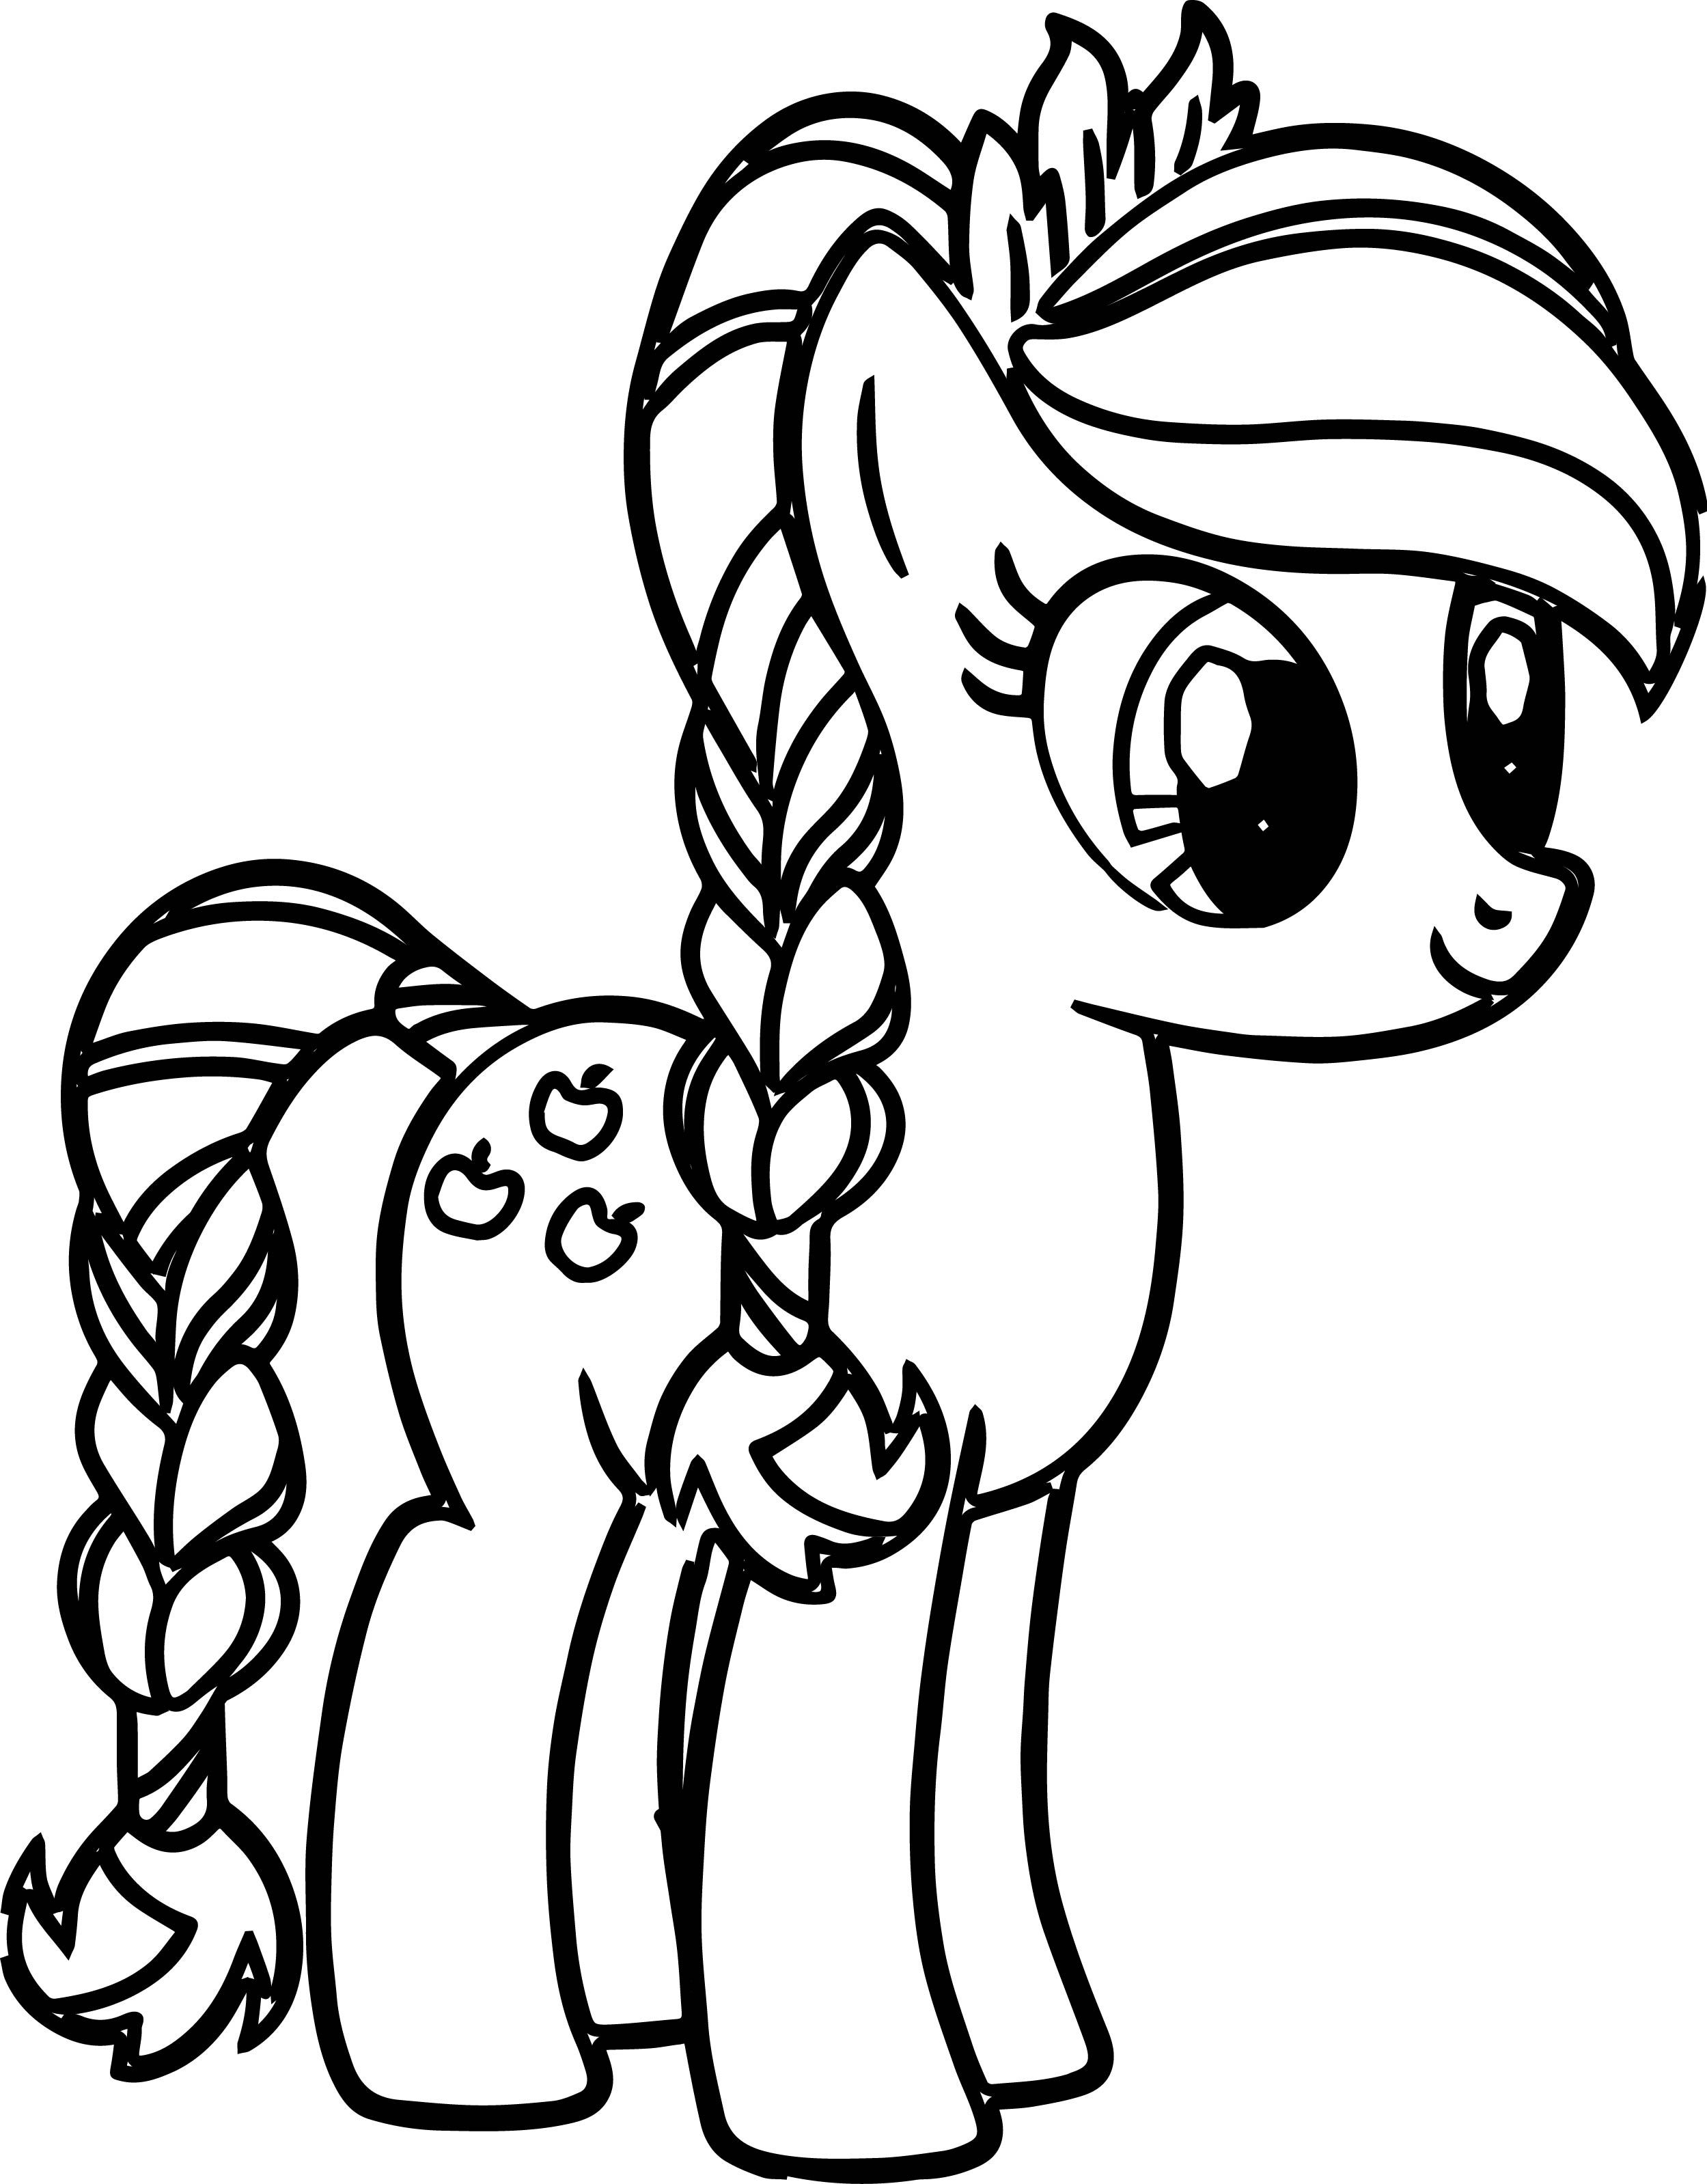 My Little Pony Coloring Pages Free To Print Coloring4free Com_mes ... | 3197x2499